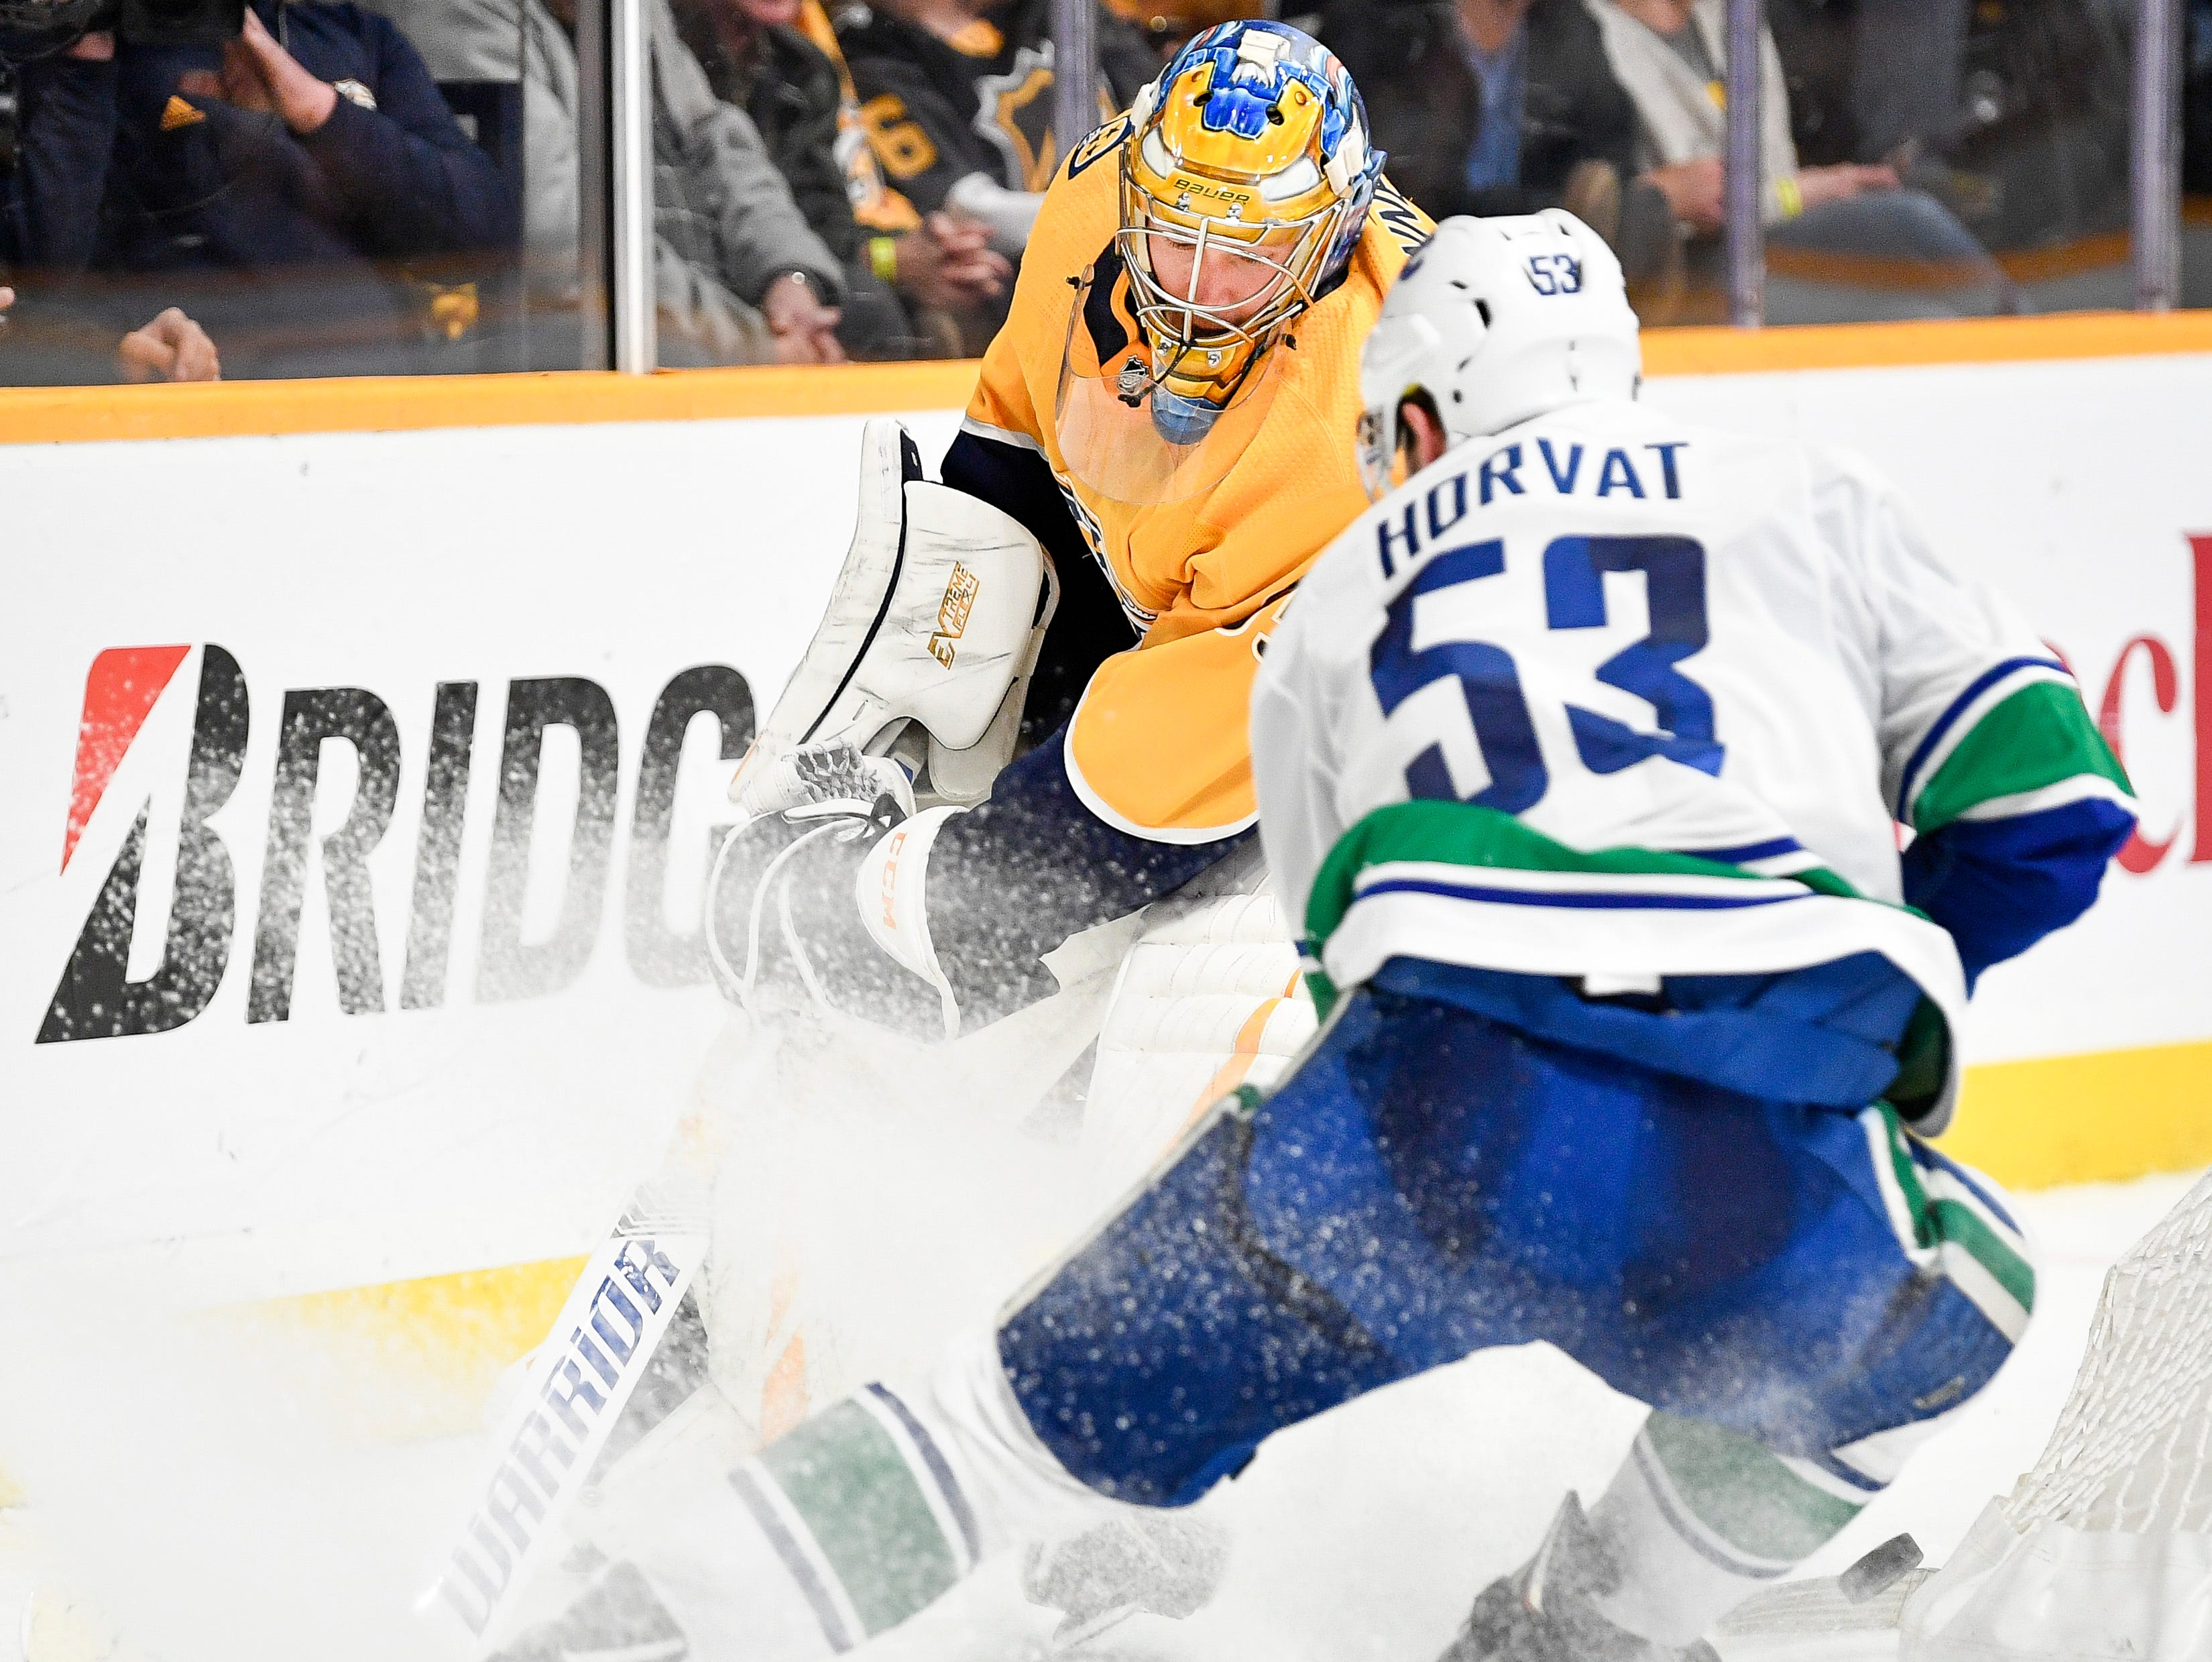 Nashville Predators goaltender Pekka Rinne (35) fights for the puck behind the net with Vancouver Canucks center Bo Horvat (53) during the second period at Bridgestone Arena in Nashville, Tenn., Thursday, Dec. 13, 2018.